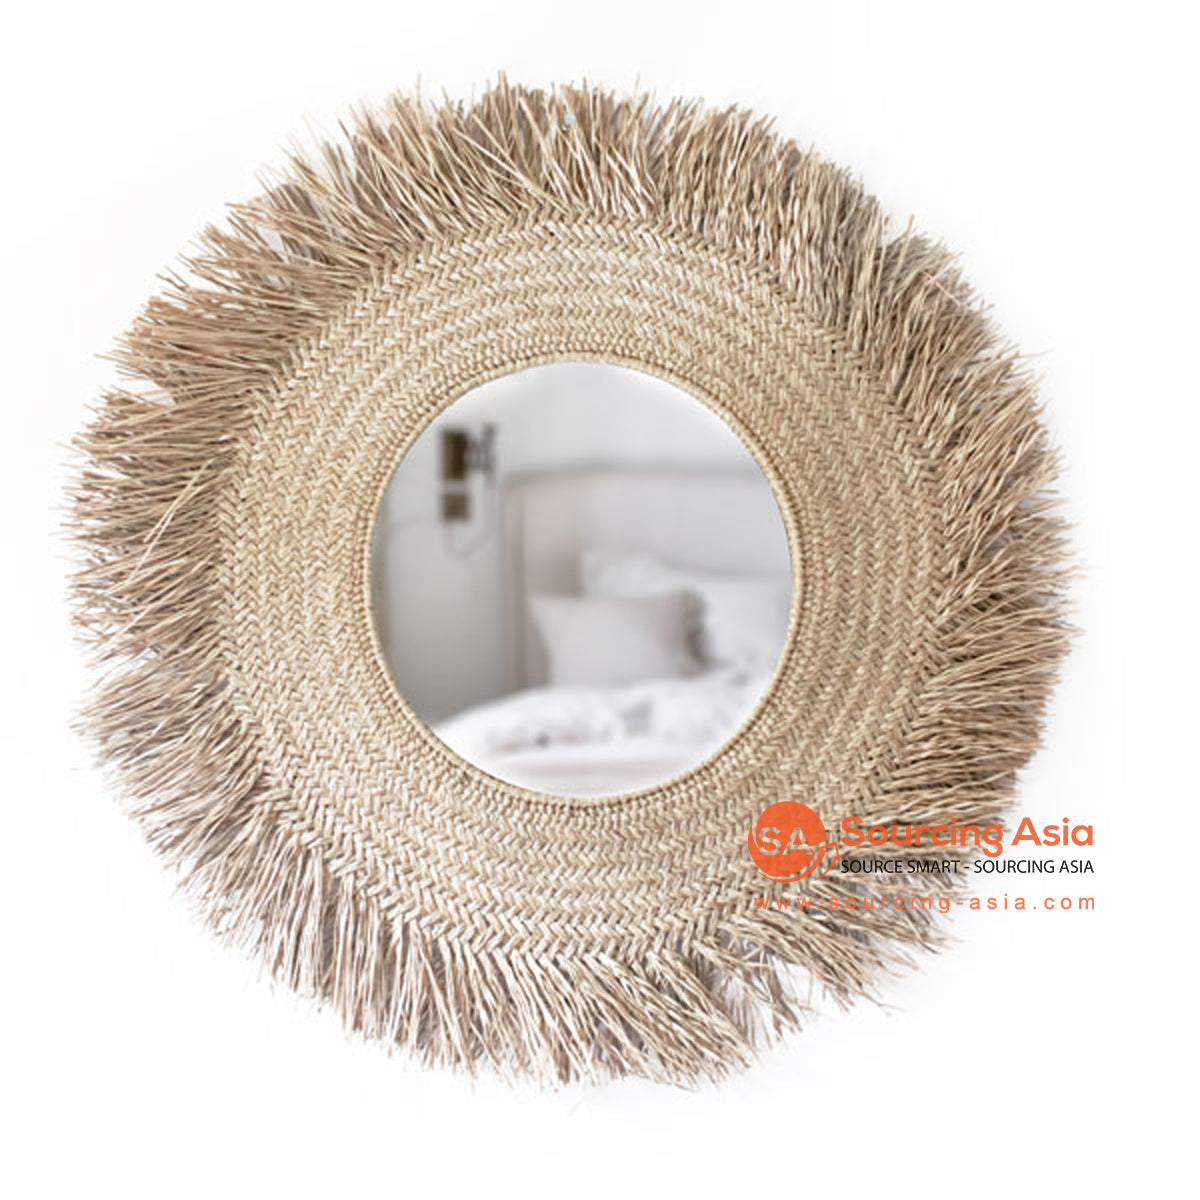 SHL172-1 LARGE NATURAL ROUND MENDONG MIRROR